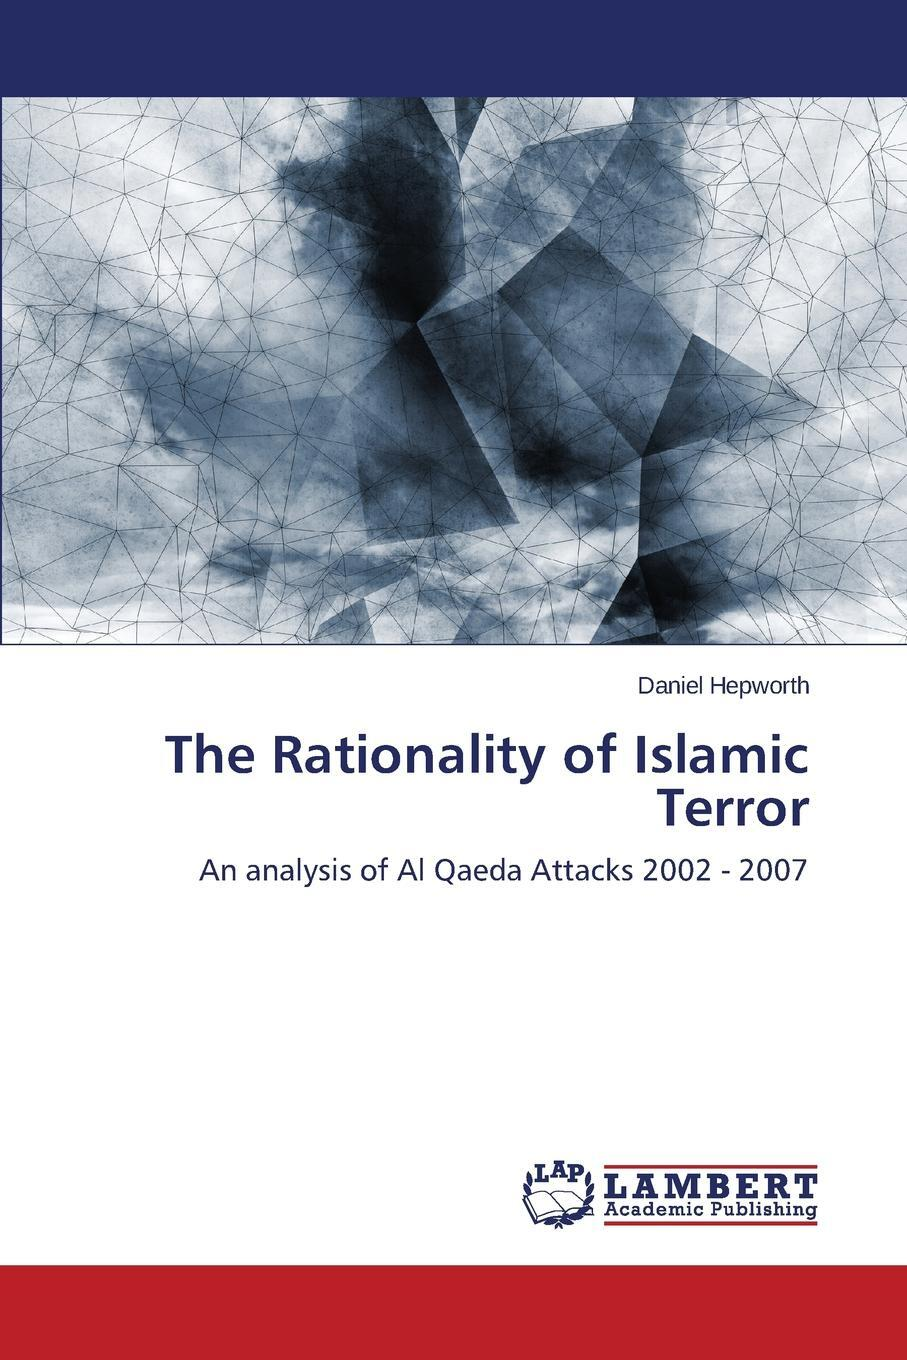 The Rationality of Islamic Terror